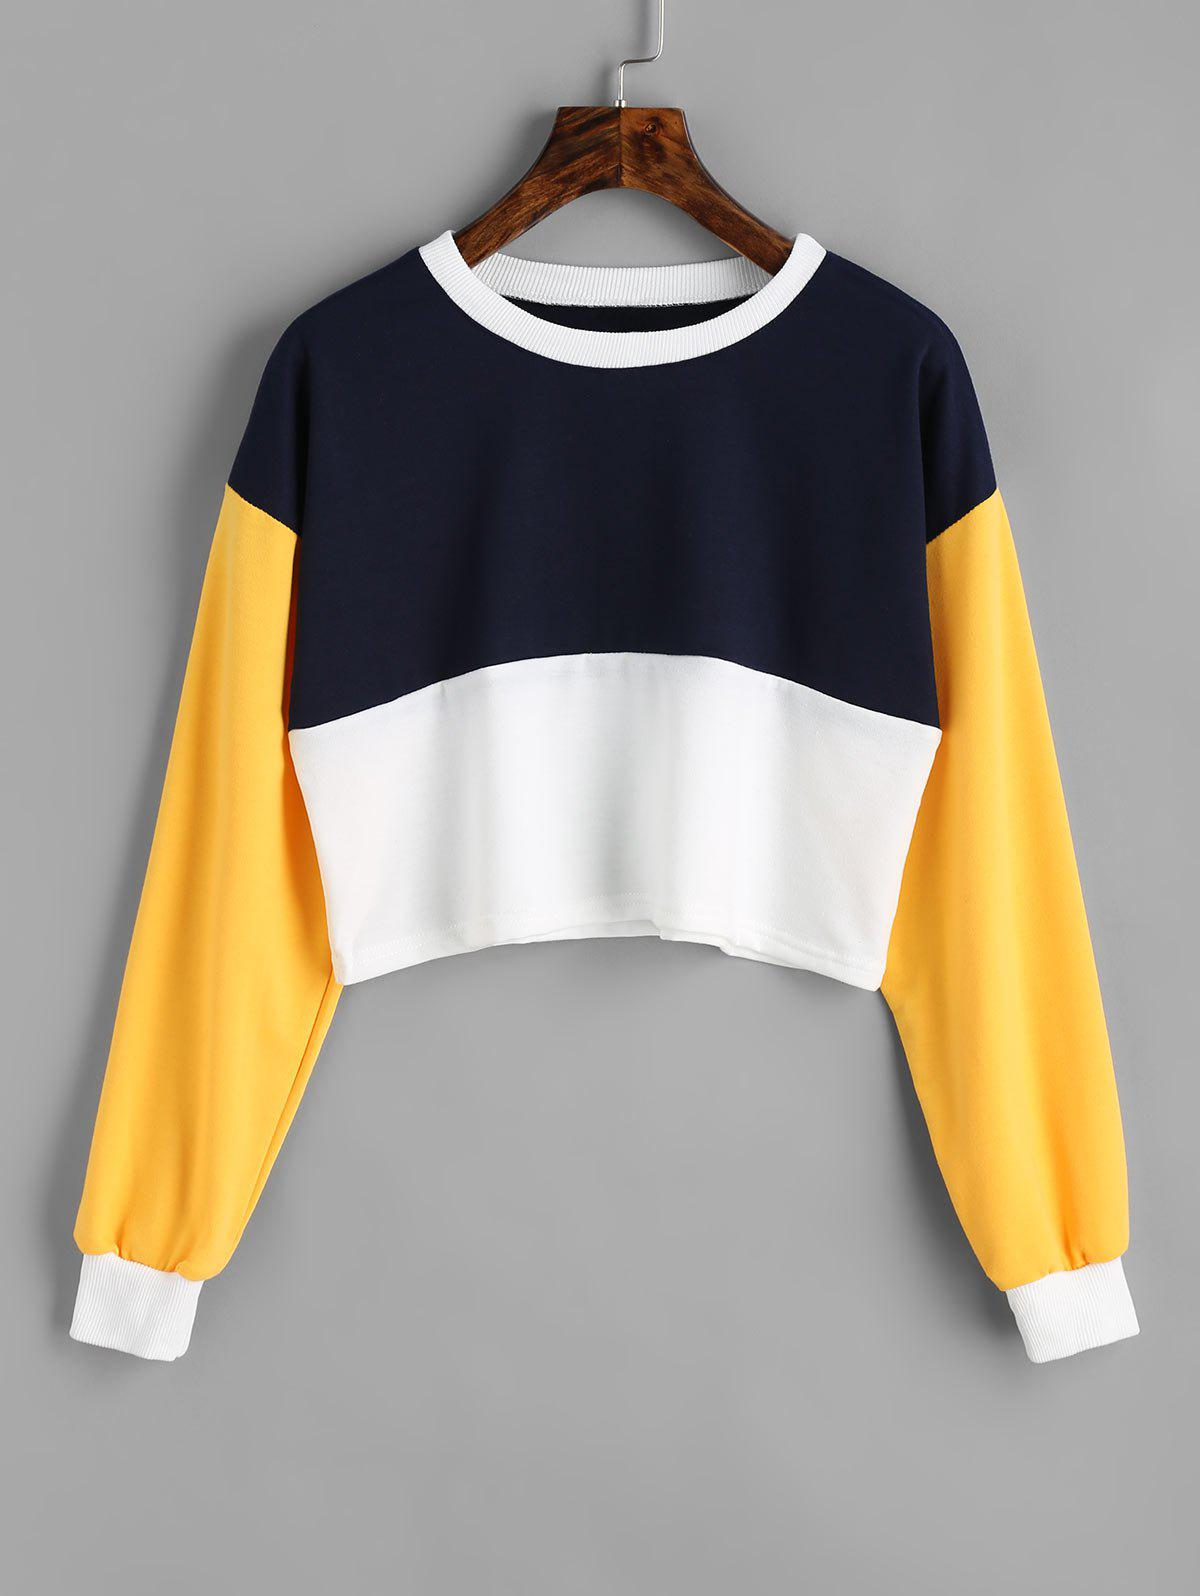 Contrast Cropped Sweatshirt - PURPLISHBLUE / WHITE L